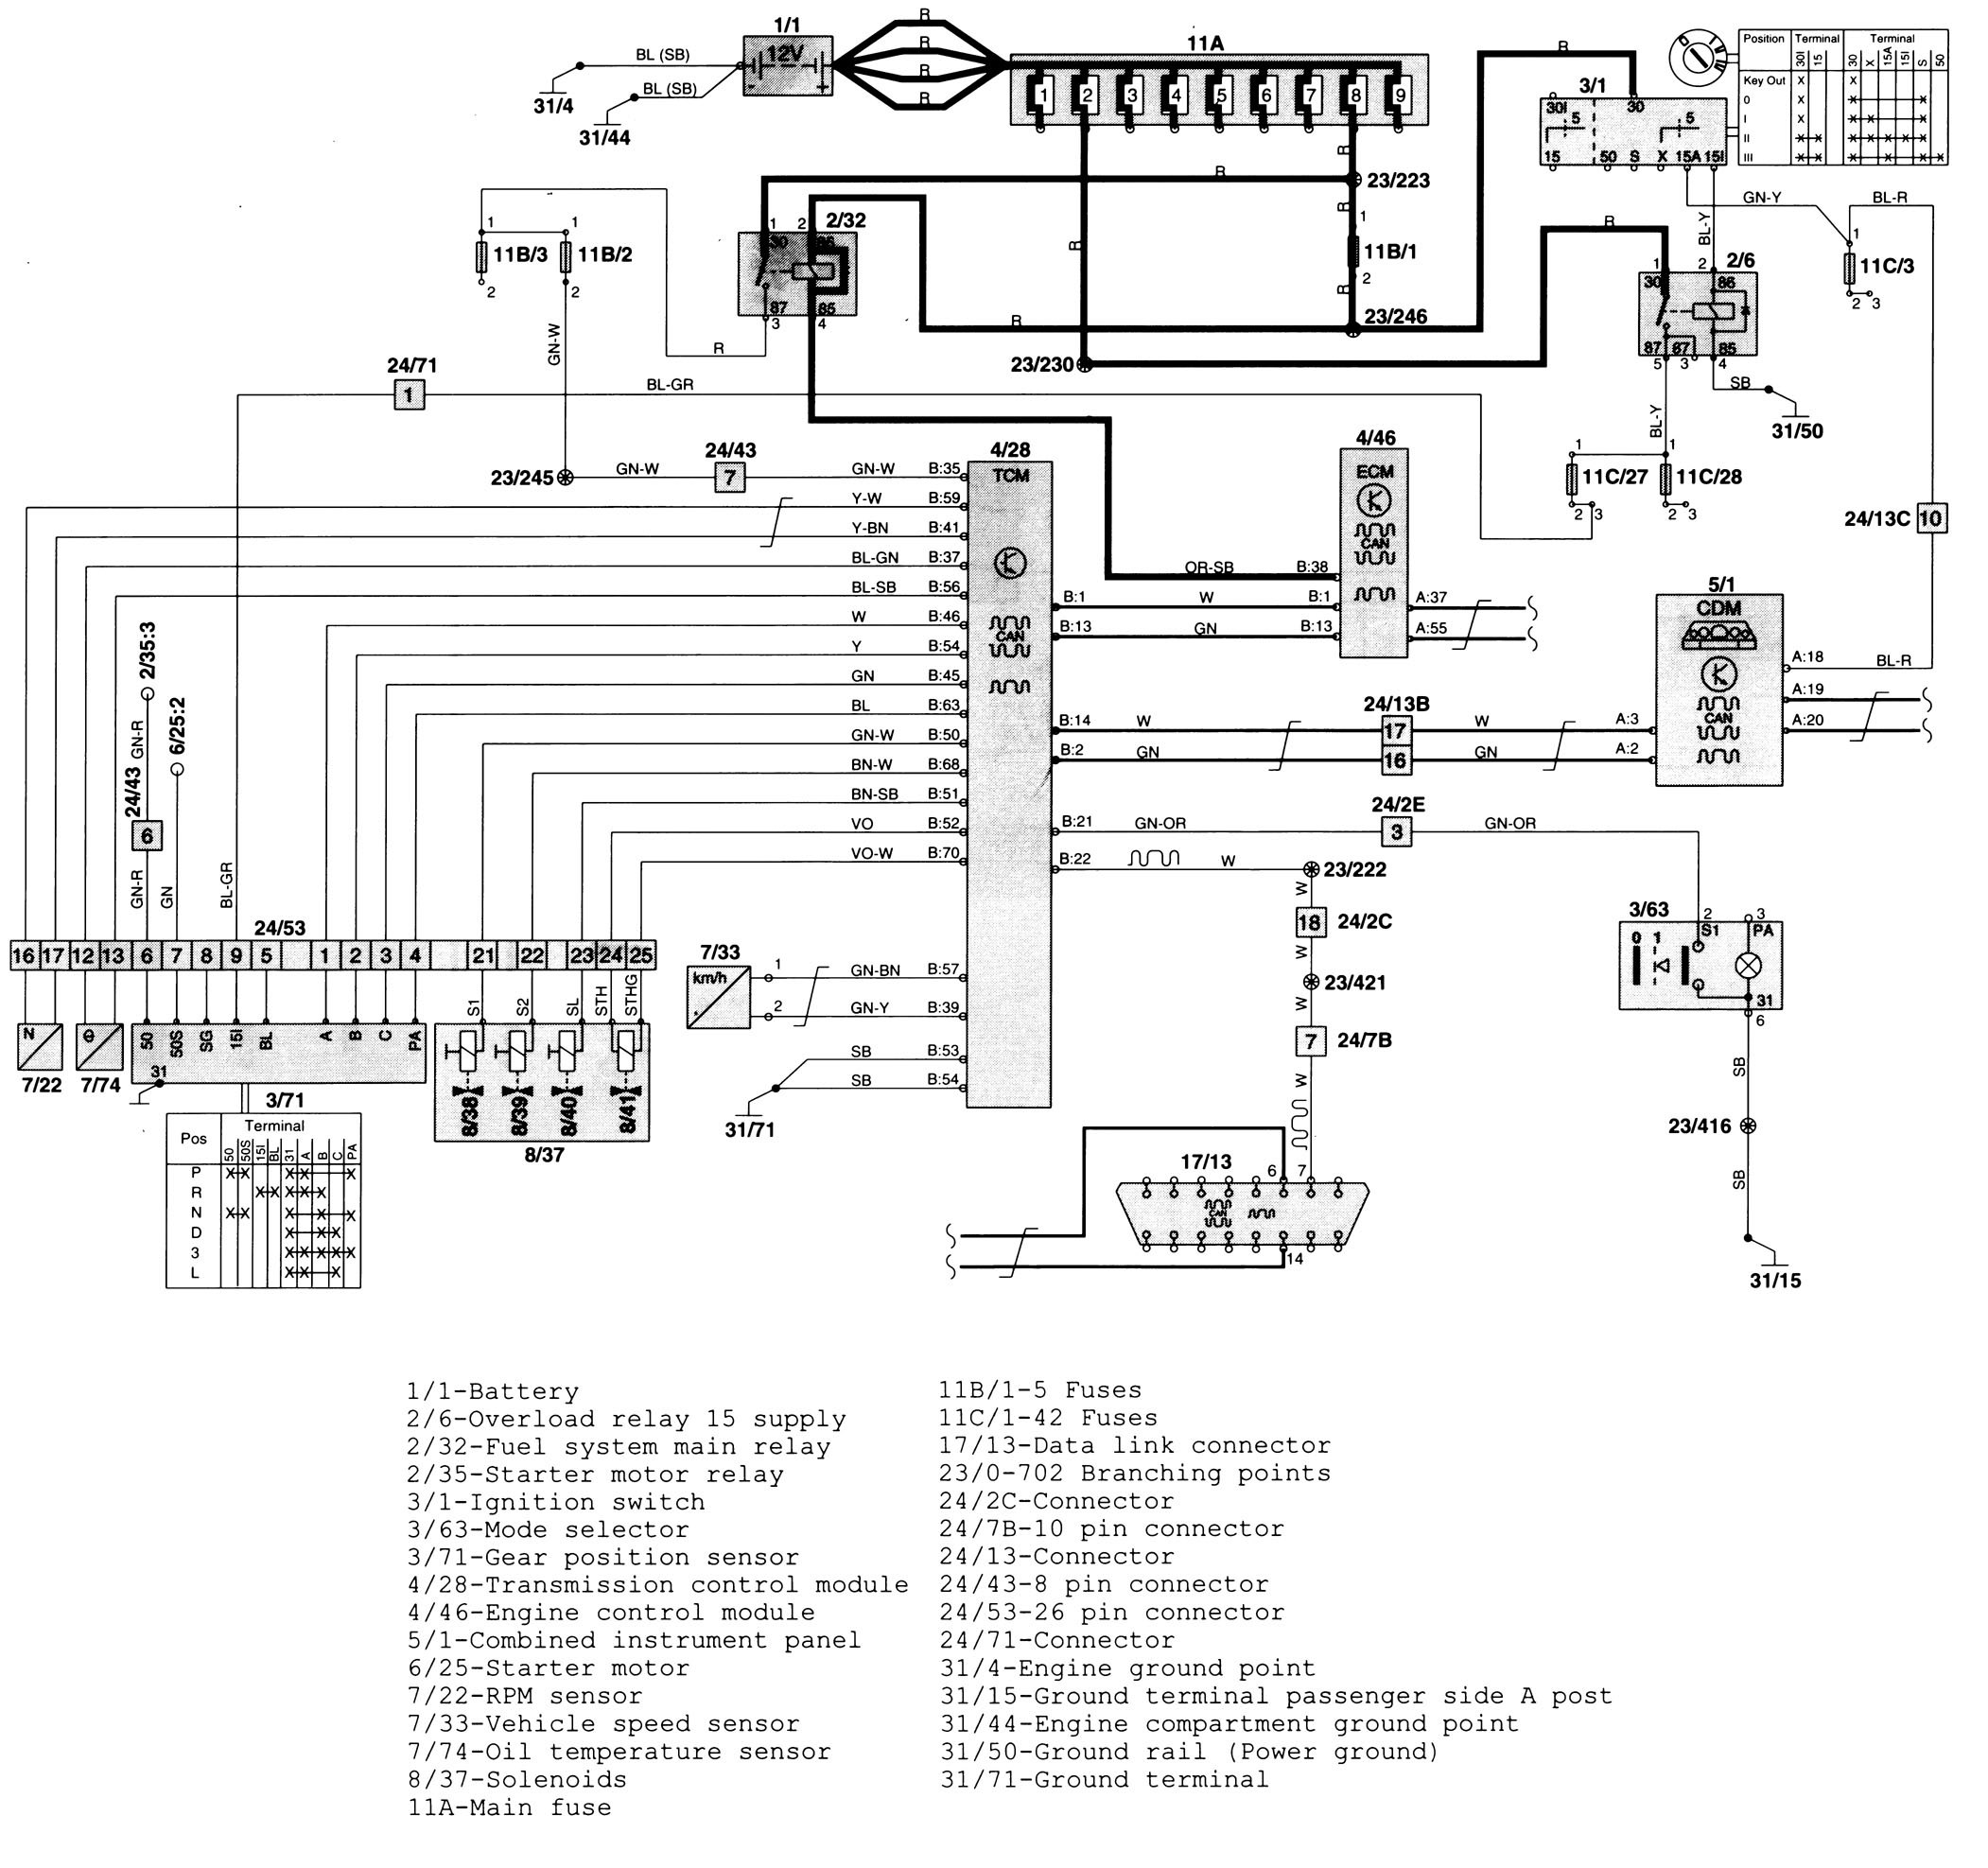 volvo c70 wiring diagram transmission controls 1999 c70 wiring diagram 1969 honda ct90 wiring diagram \u2022 wiring volvo amazon wiring diagram at edmiracle.co